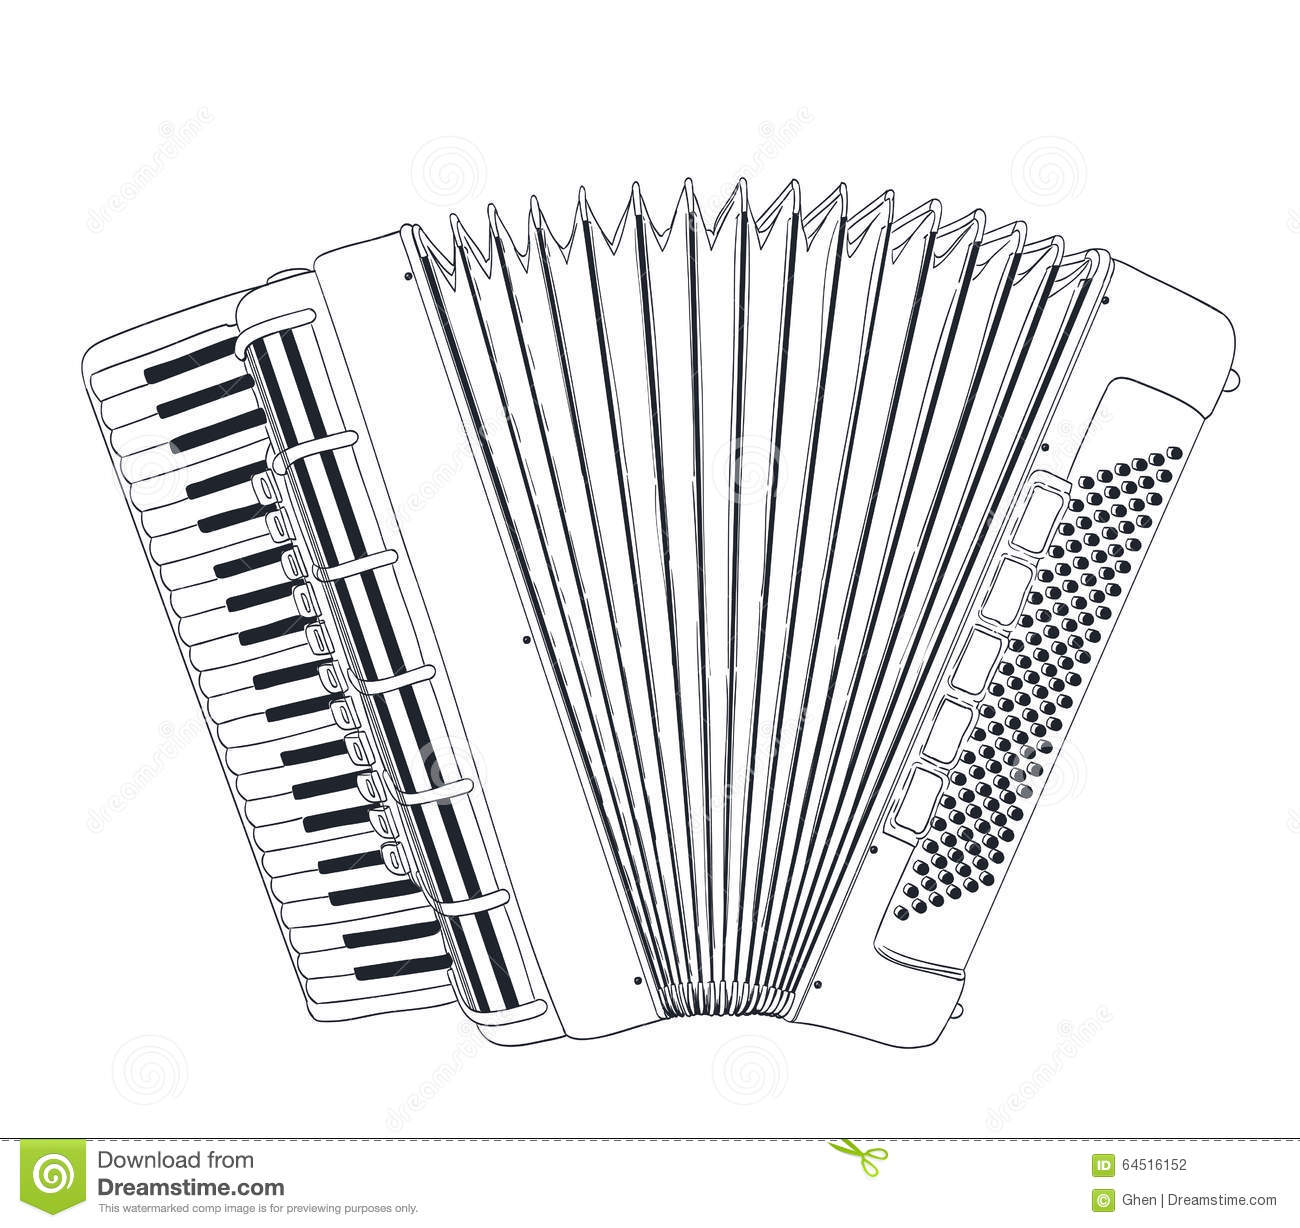 Accordion Drawing Stock Vector - Image: 64516152